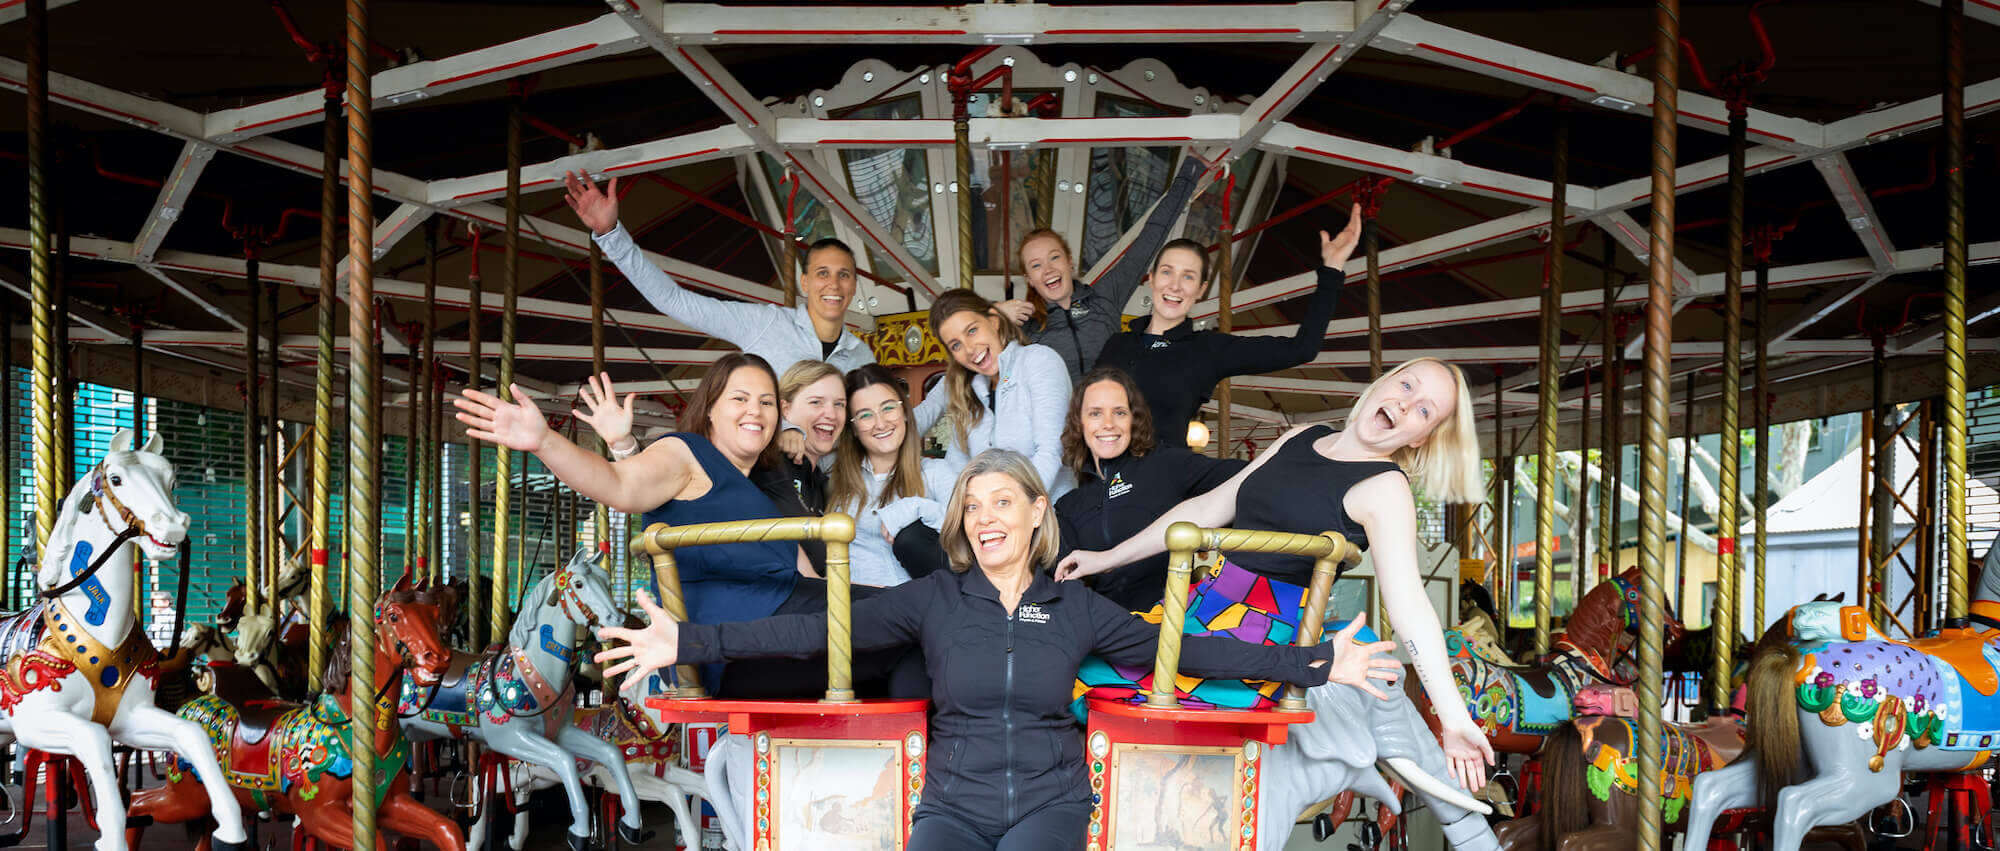 Higher Function Physio & Pilates team on carousel canberra city